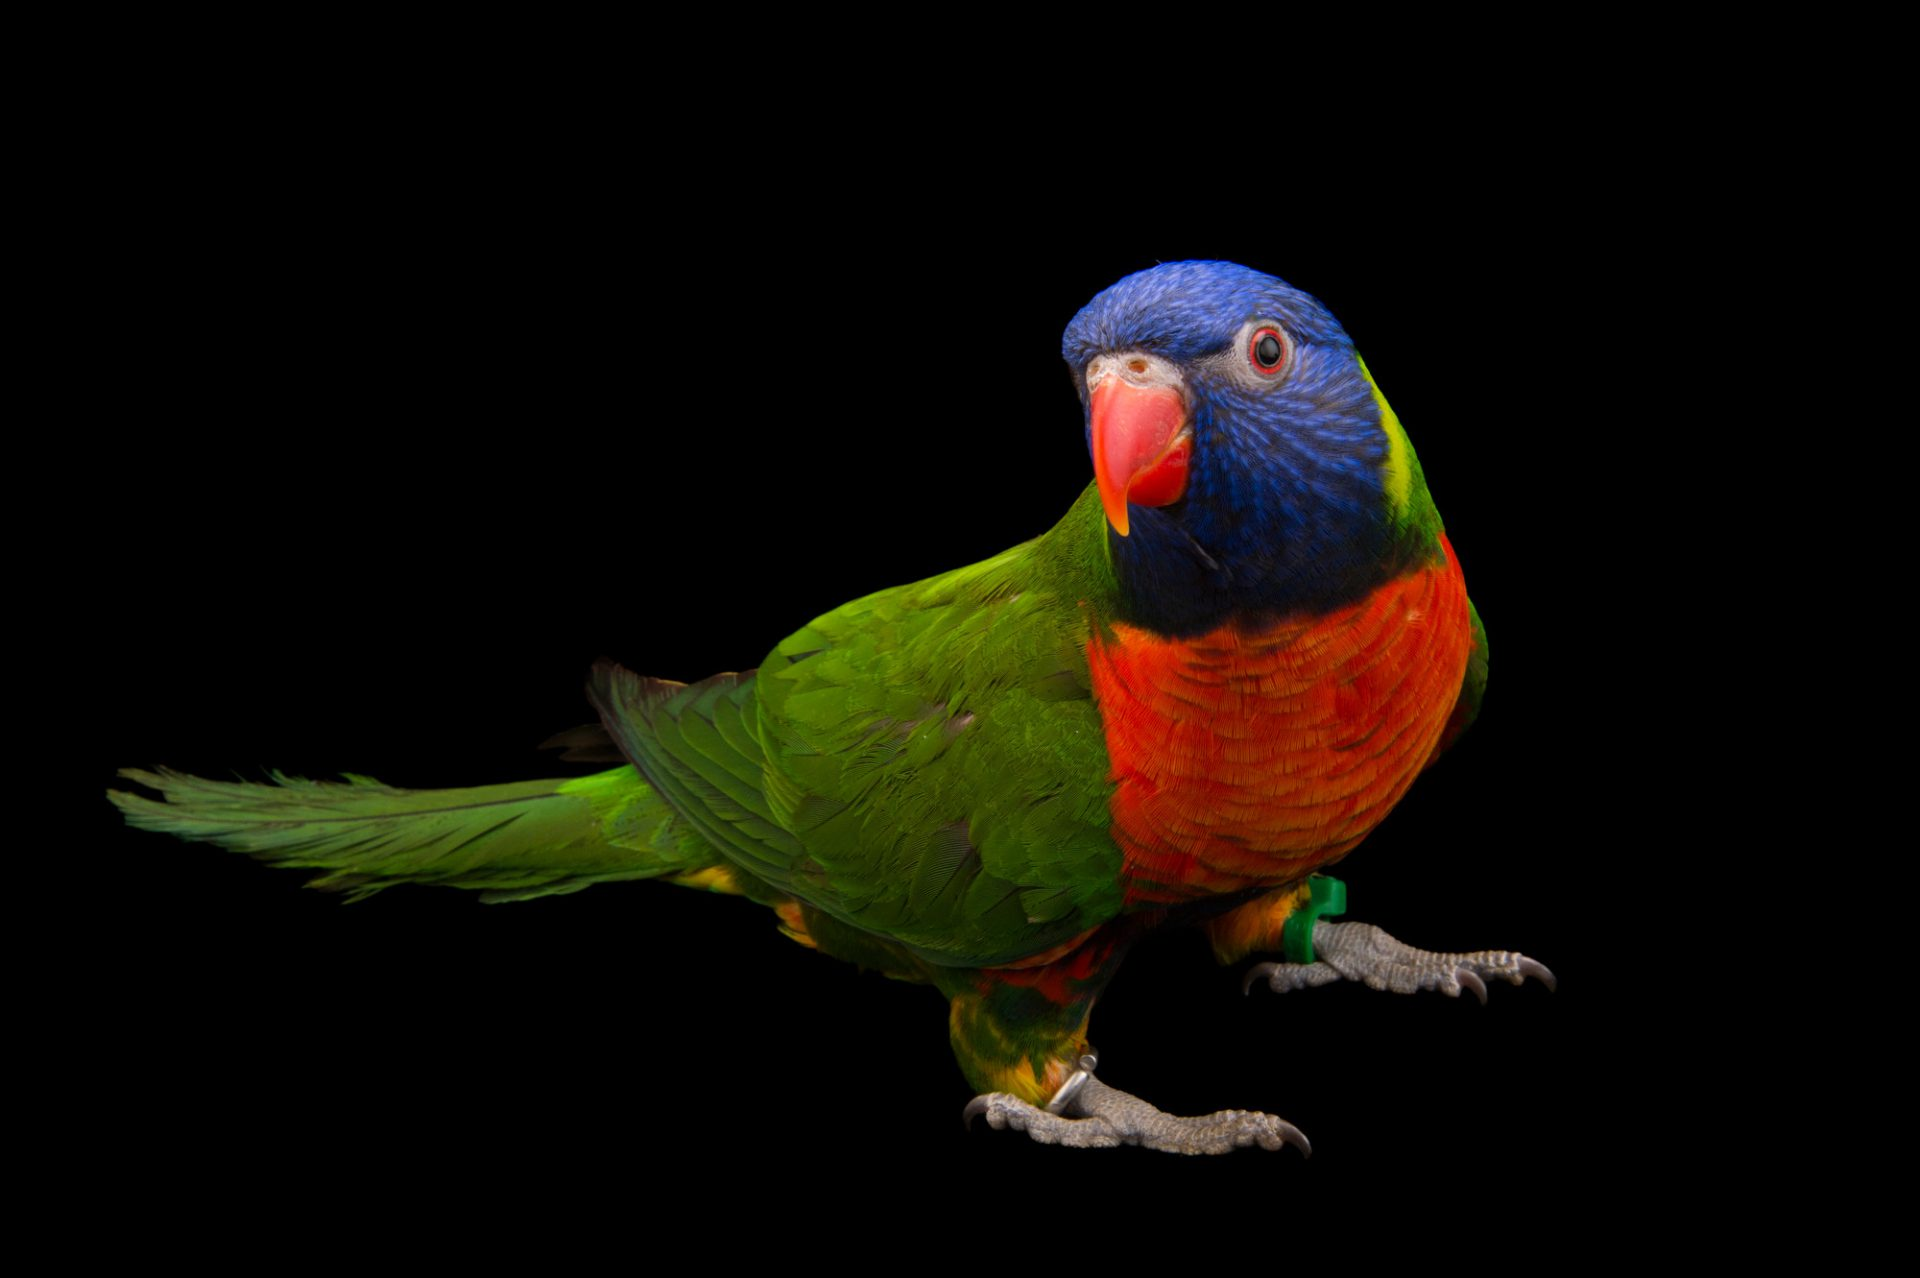 Picture of an Australian rainbow lorikeet (Trichoglossus moluccanus) at the Indianapolis Zoo.